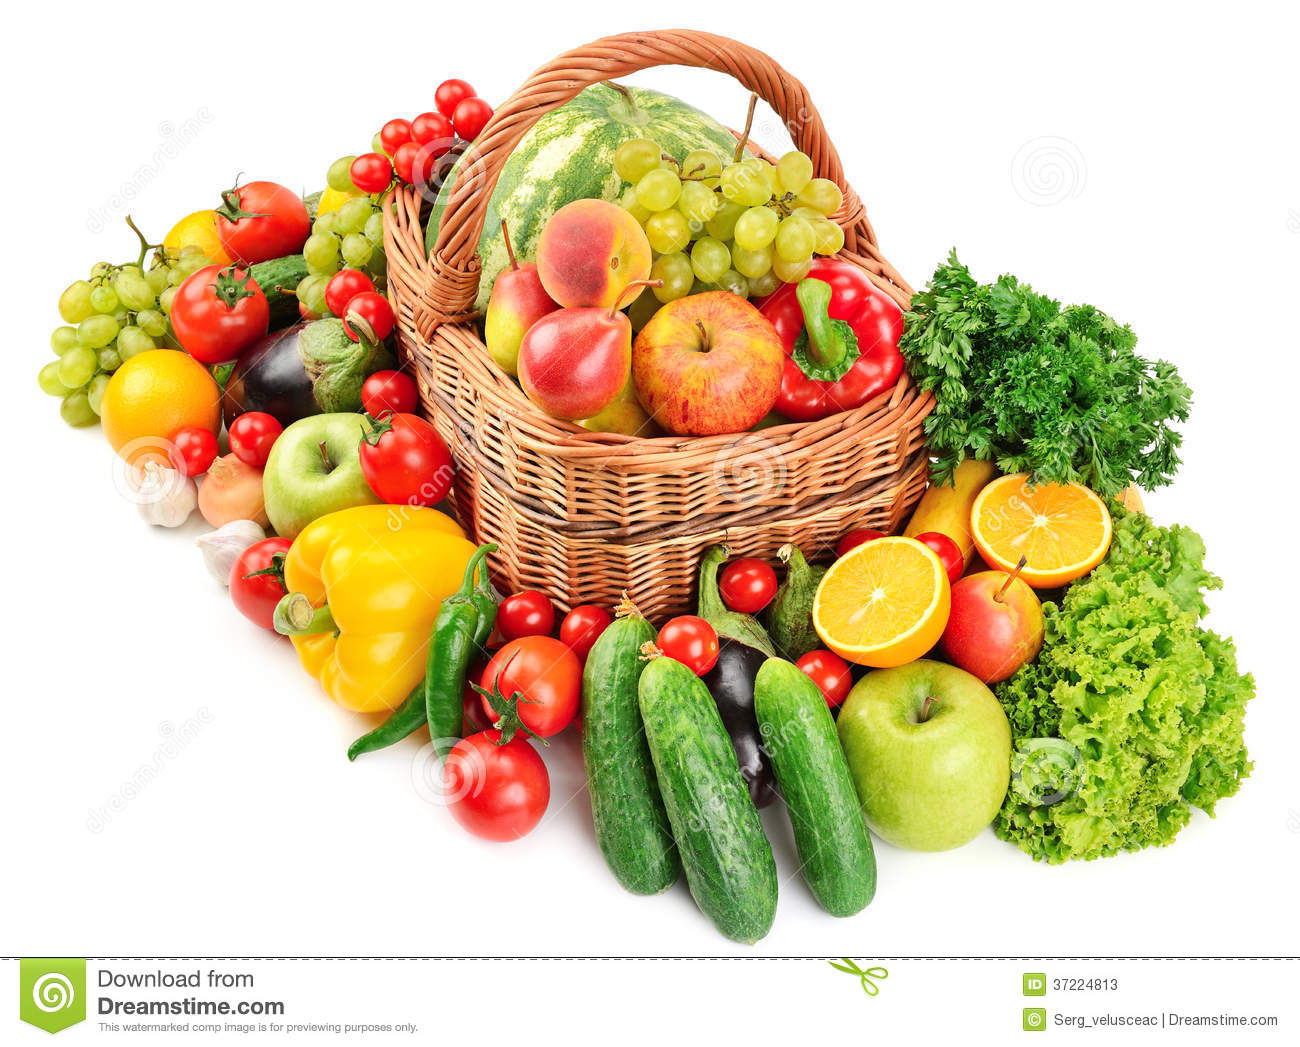 Fruit And Vegetable In Basket Stock Photos - Image: 37224813